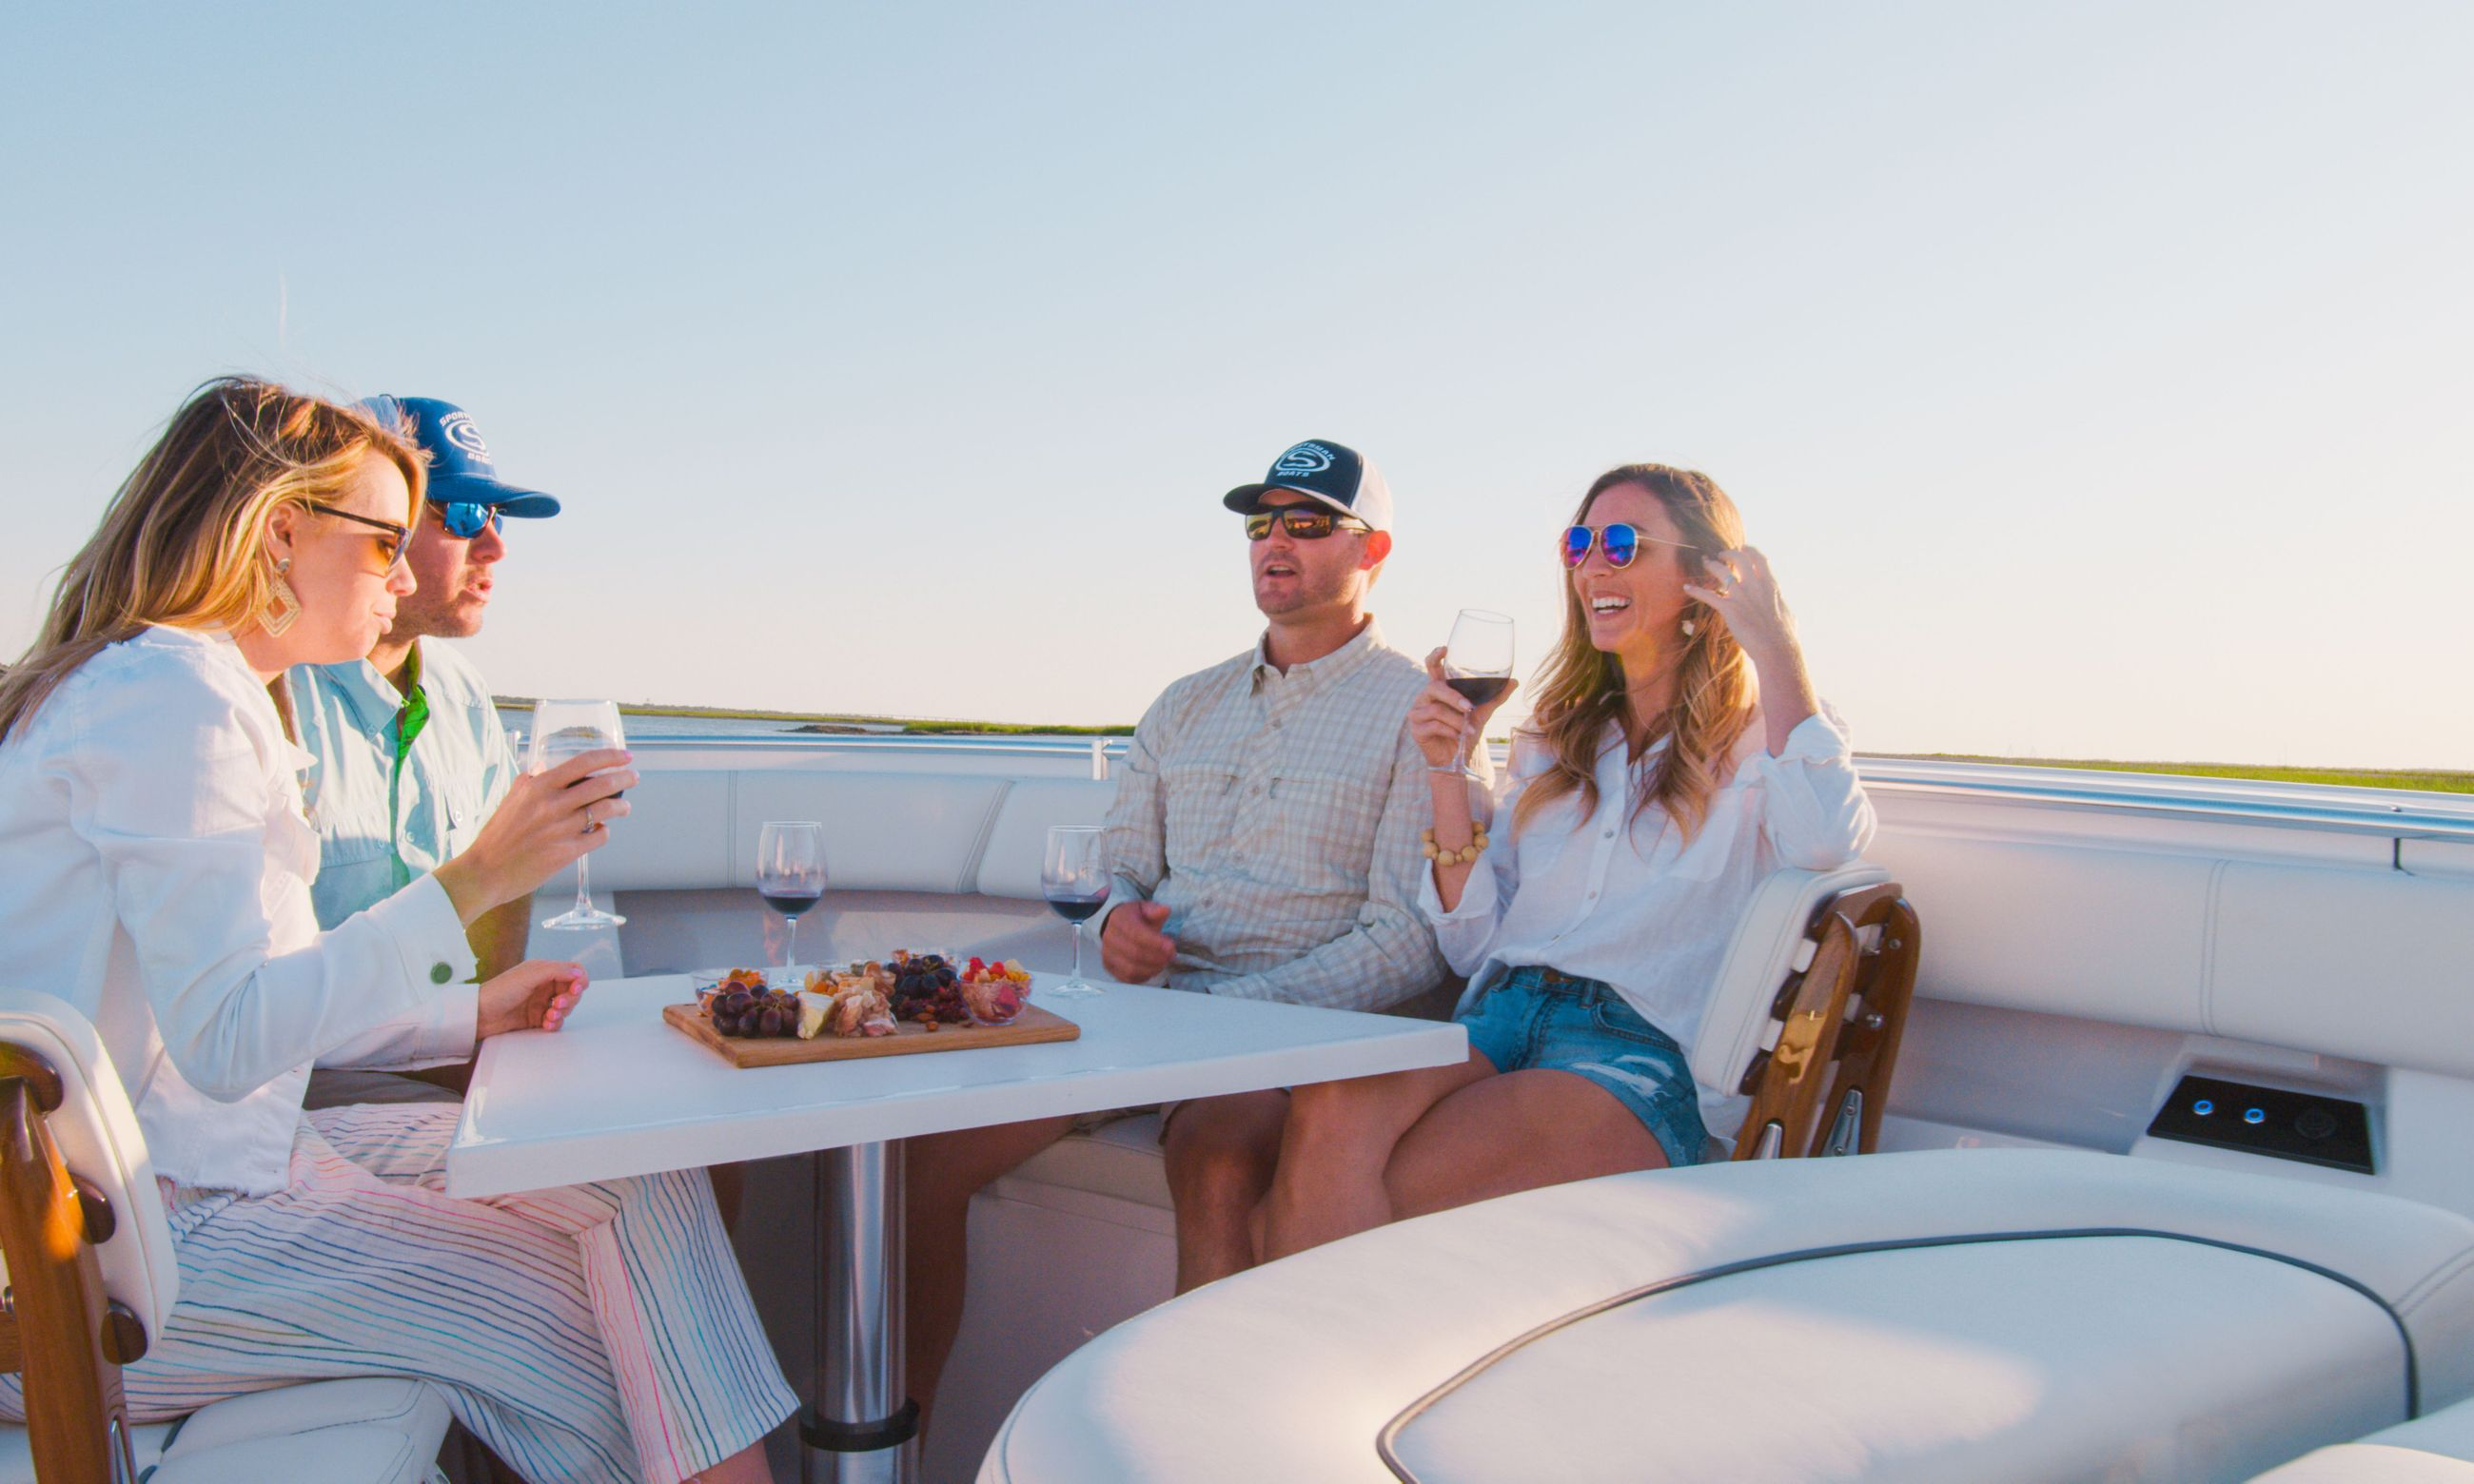 Family time on a Sportsman Boat.